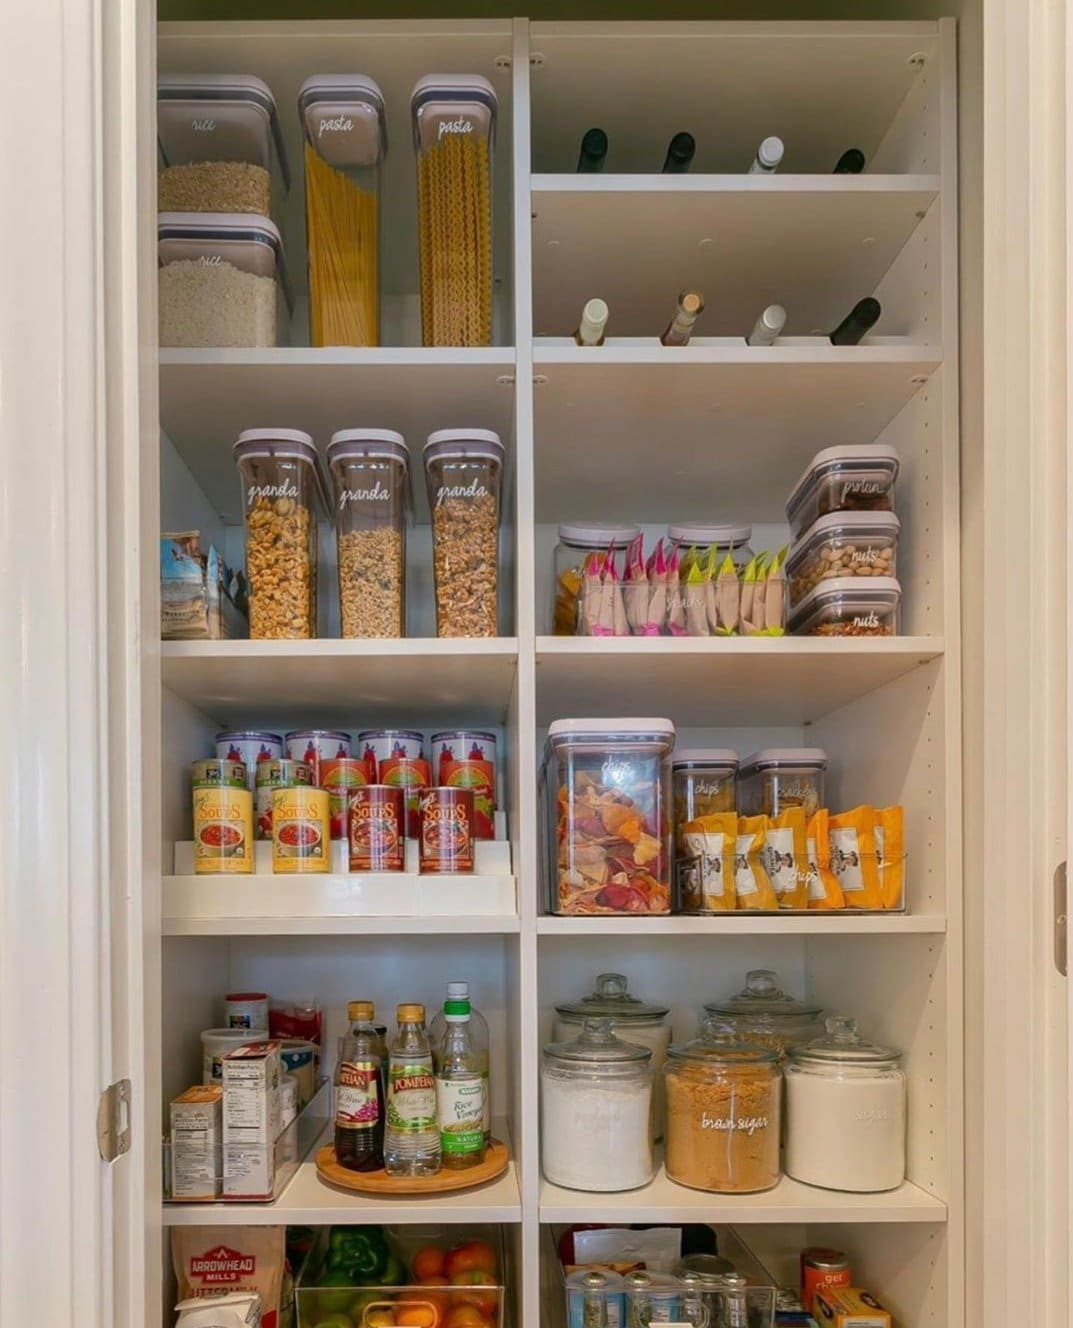 clear containers are inherently kid-friendly because they can see what's there